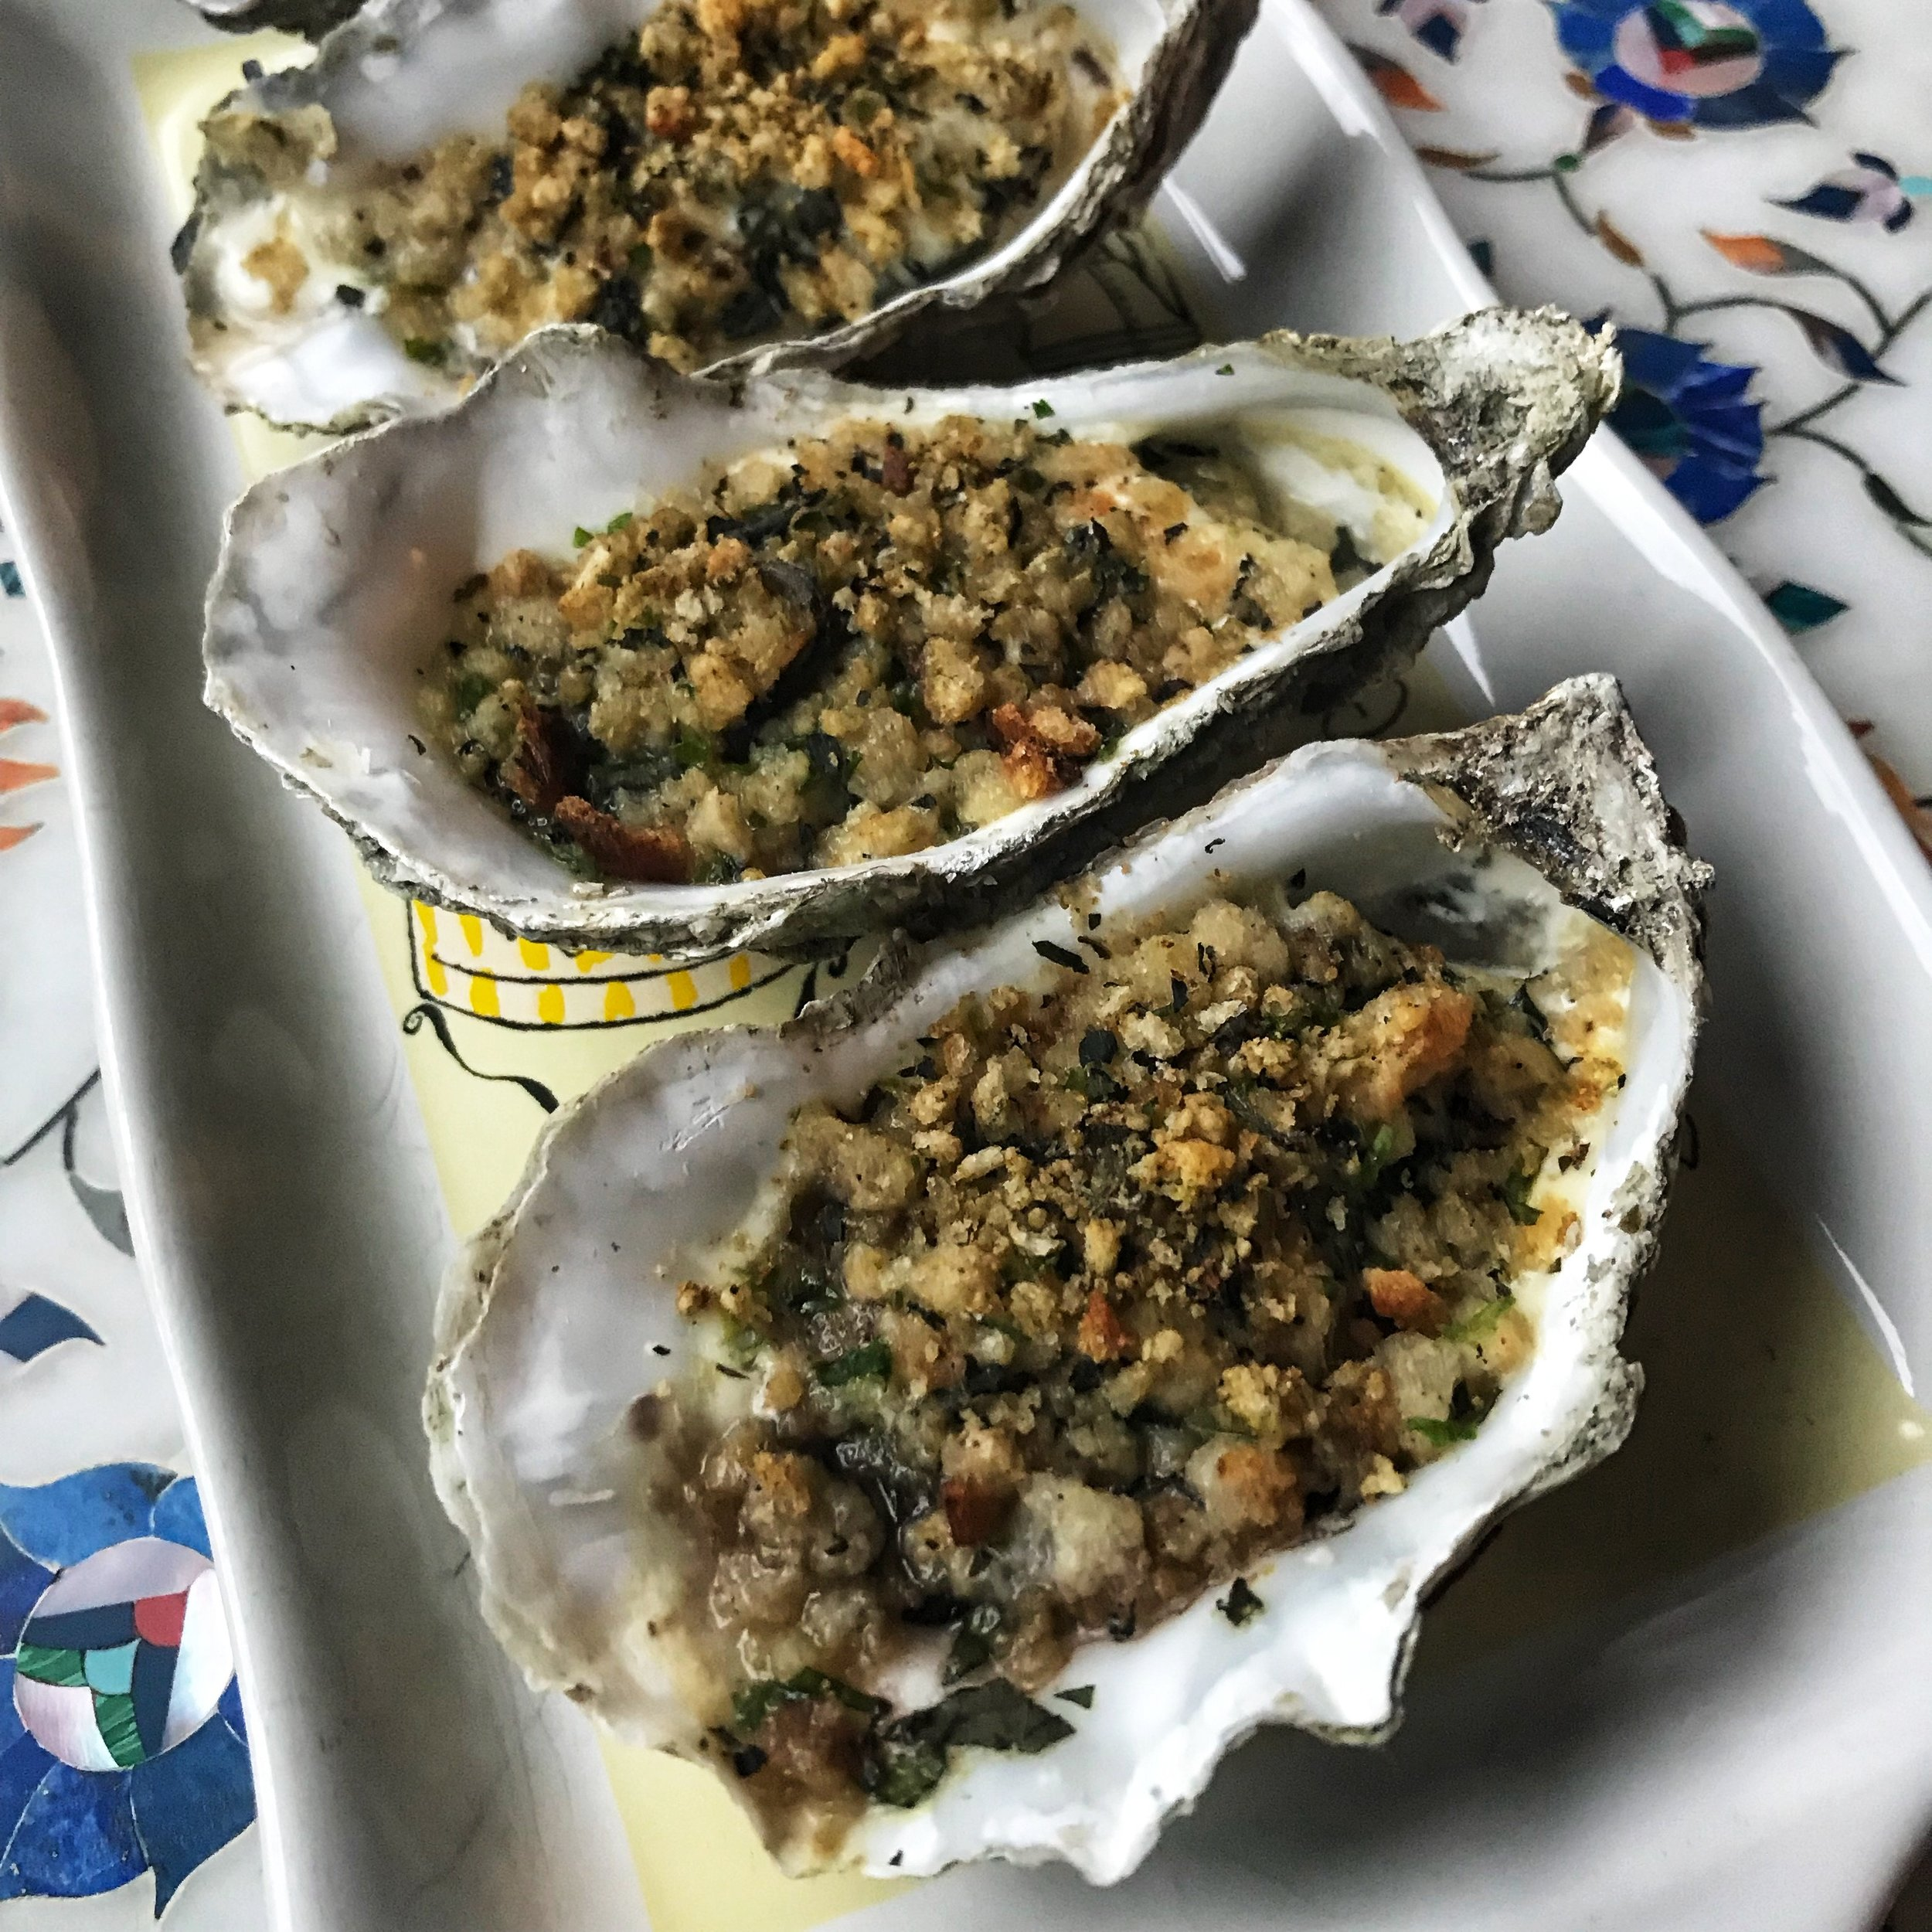 Baked Oysters - With a Sea Grass, Mint and Marjoram Bread Crumb and Buttermilk Sauce